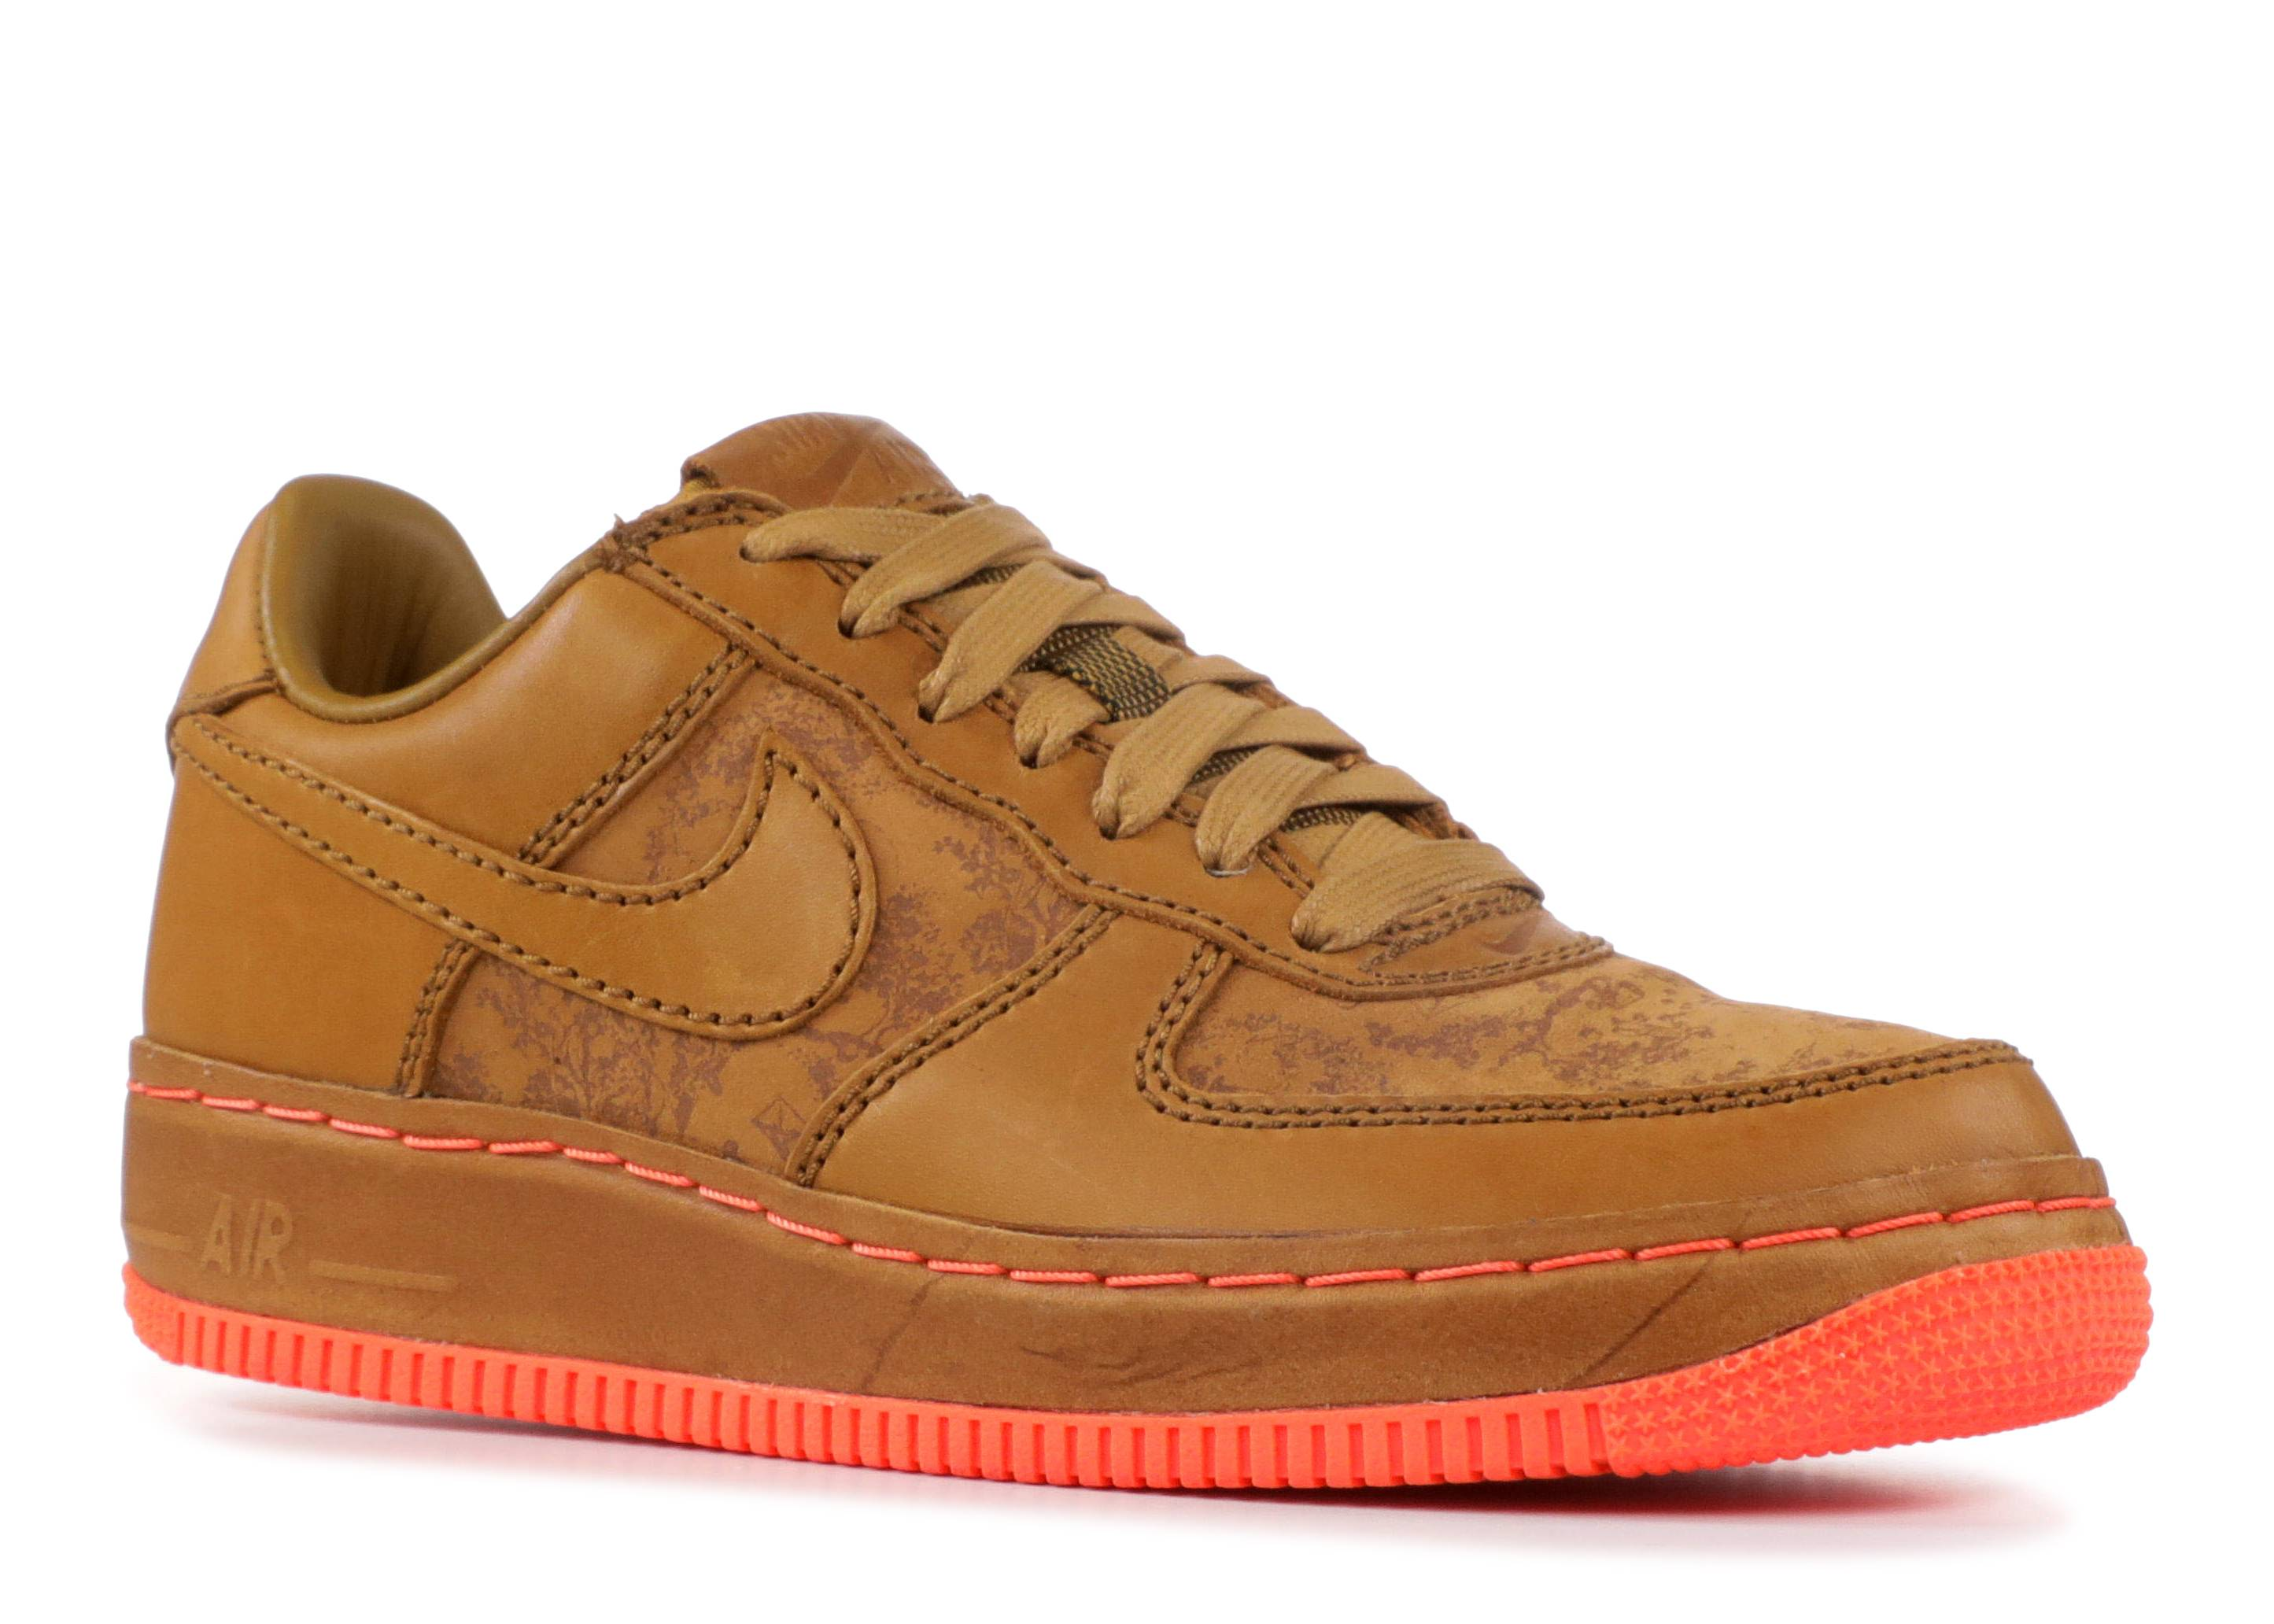 sports shoes ba86a ad5c7 Air Force 1 Low Insideout - Nike - 312486 271 - maplegolden hops-wild mango   Flight Club